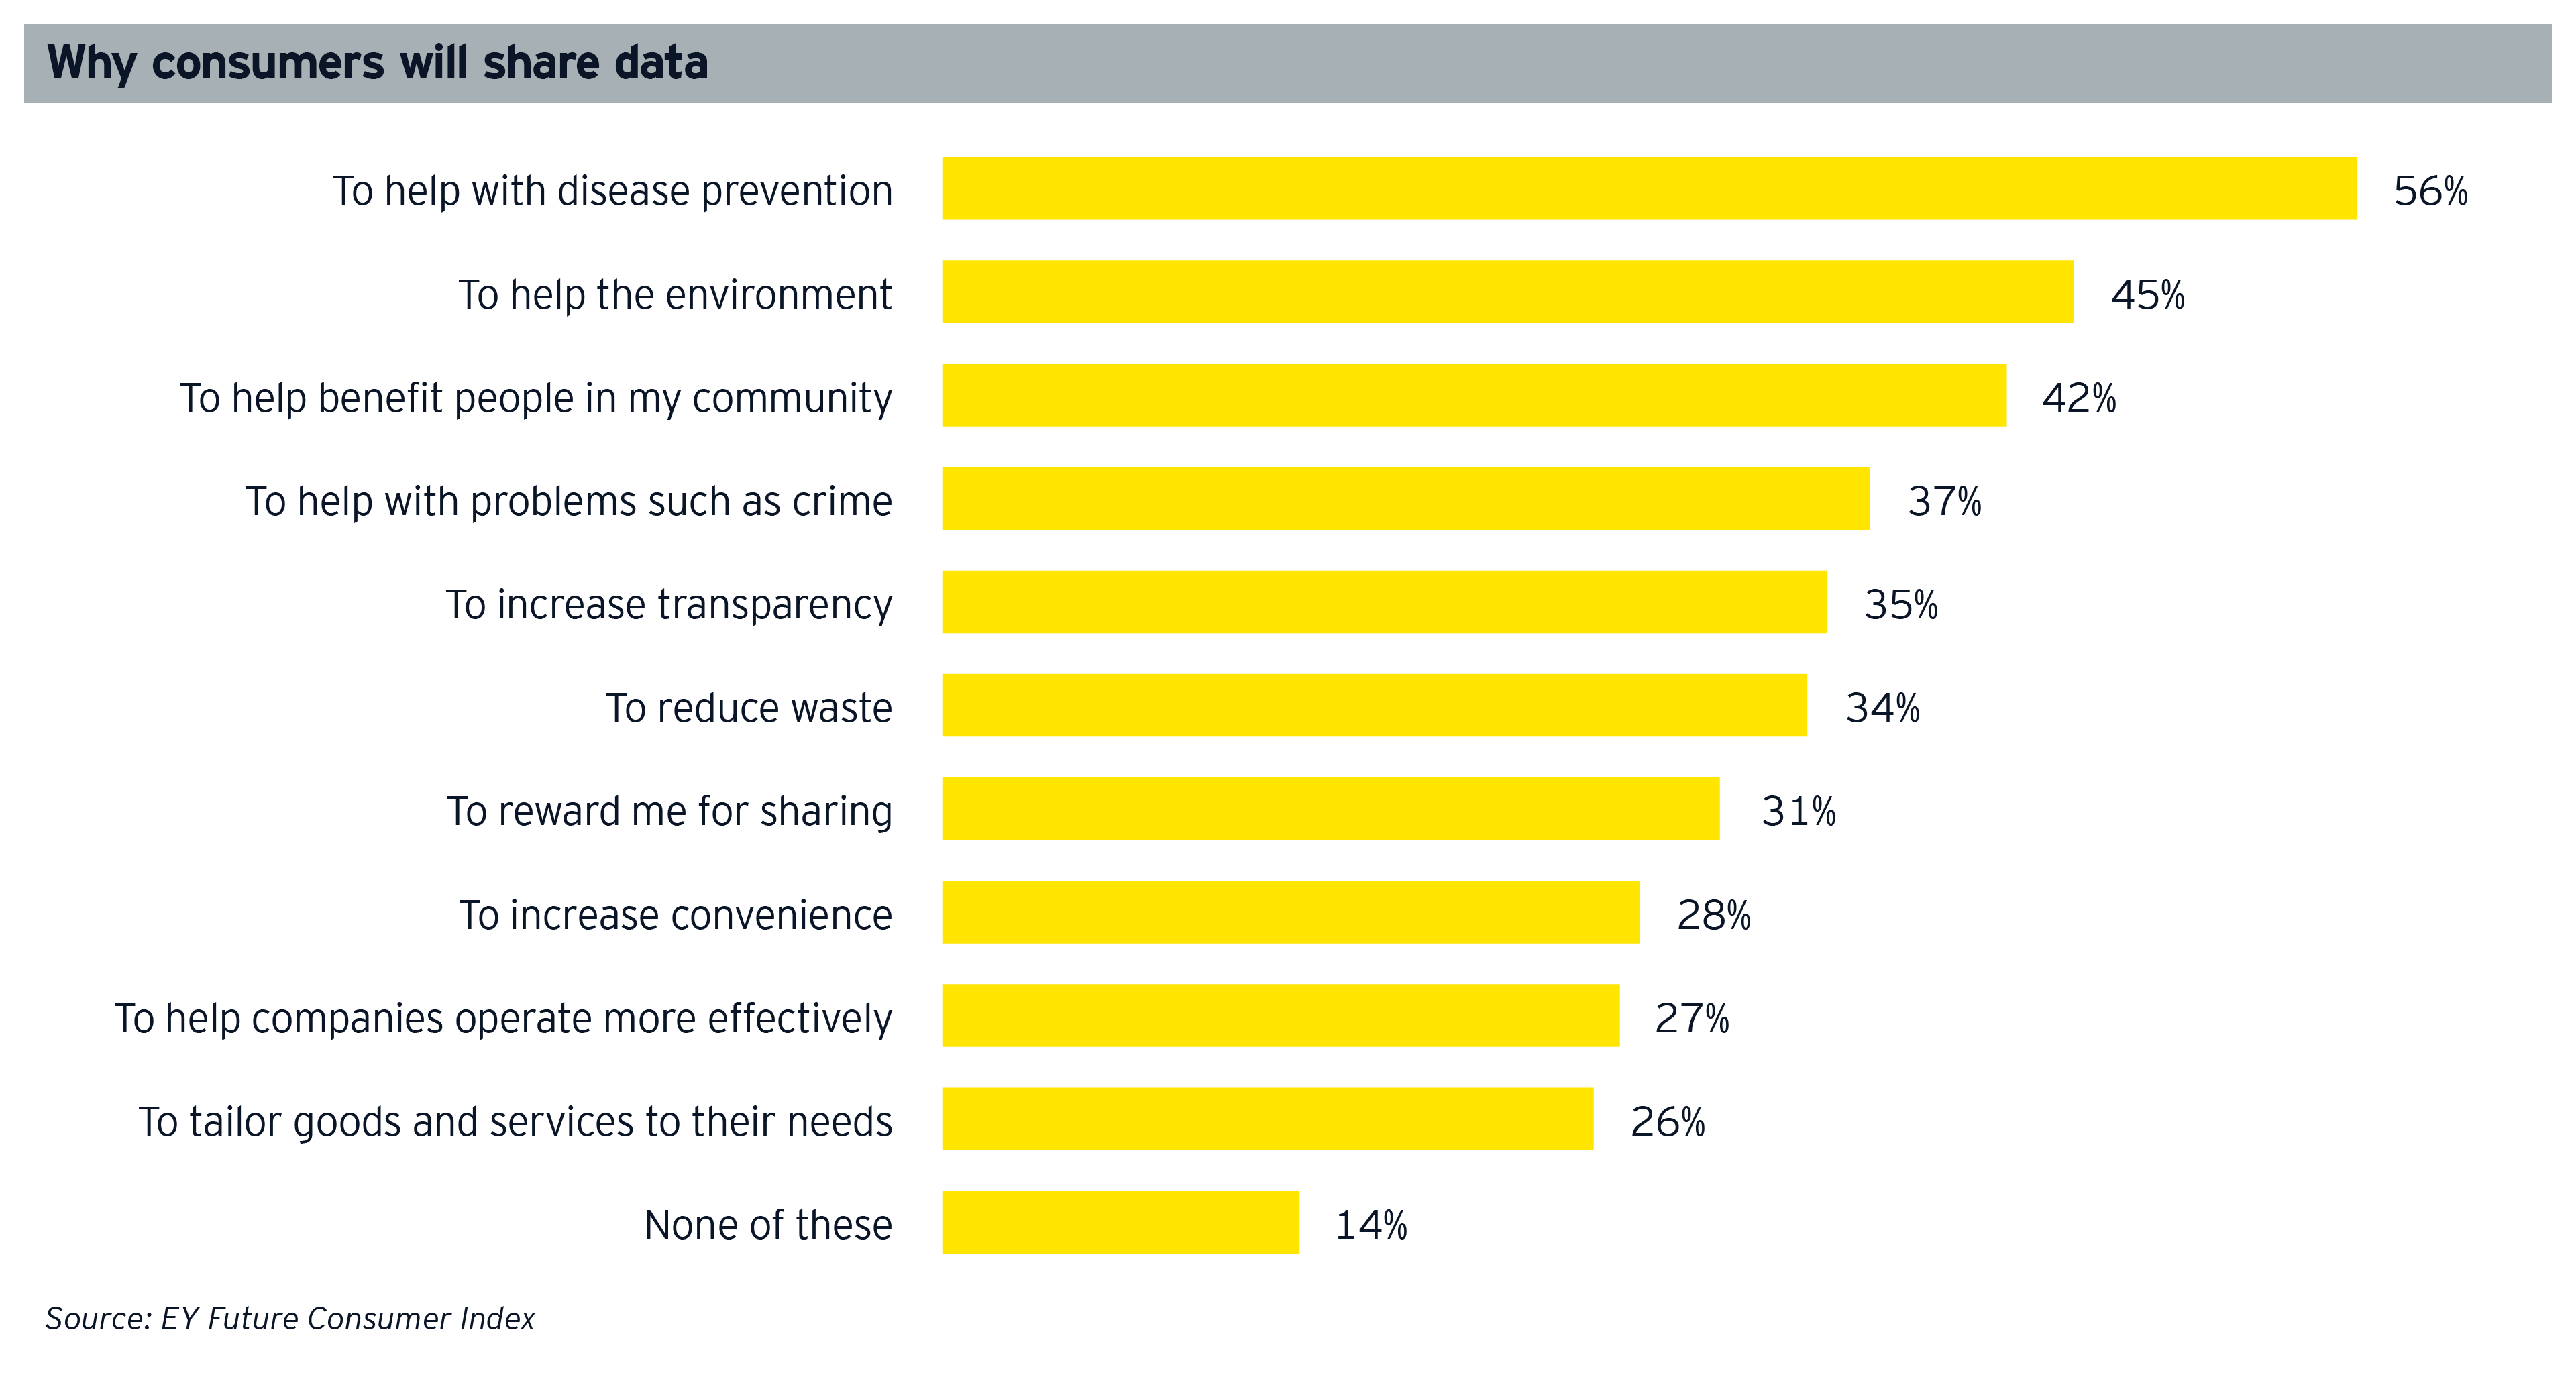 Why consumers will share data